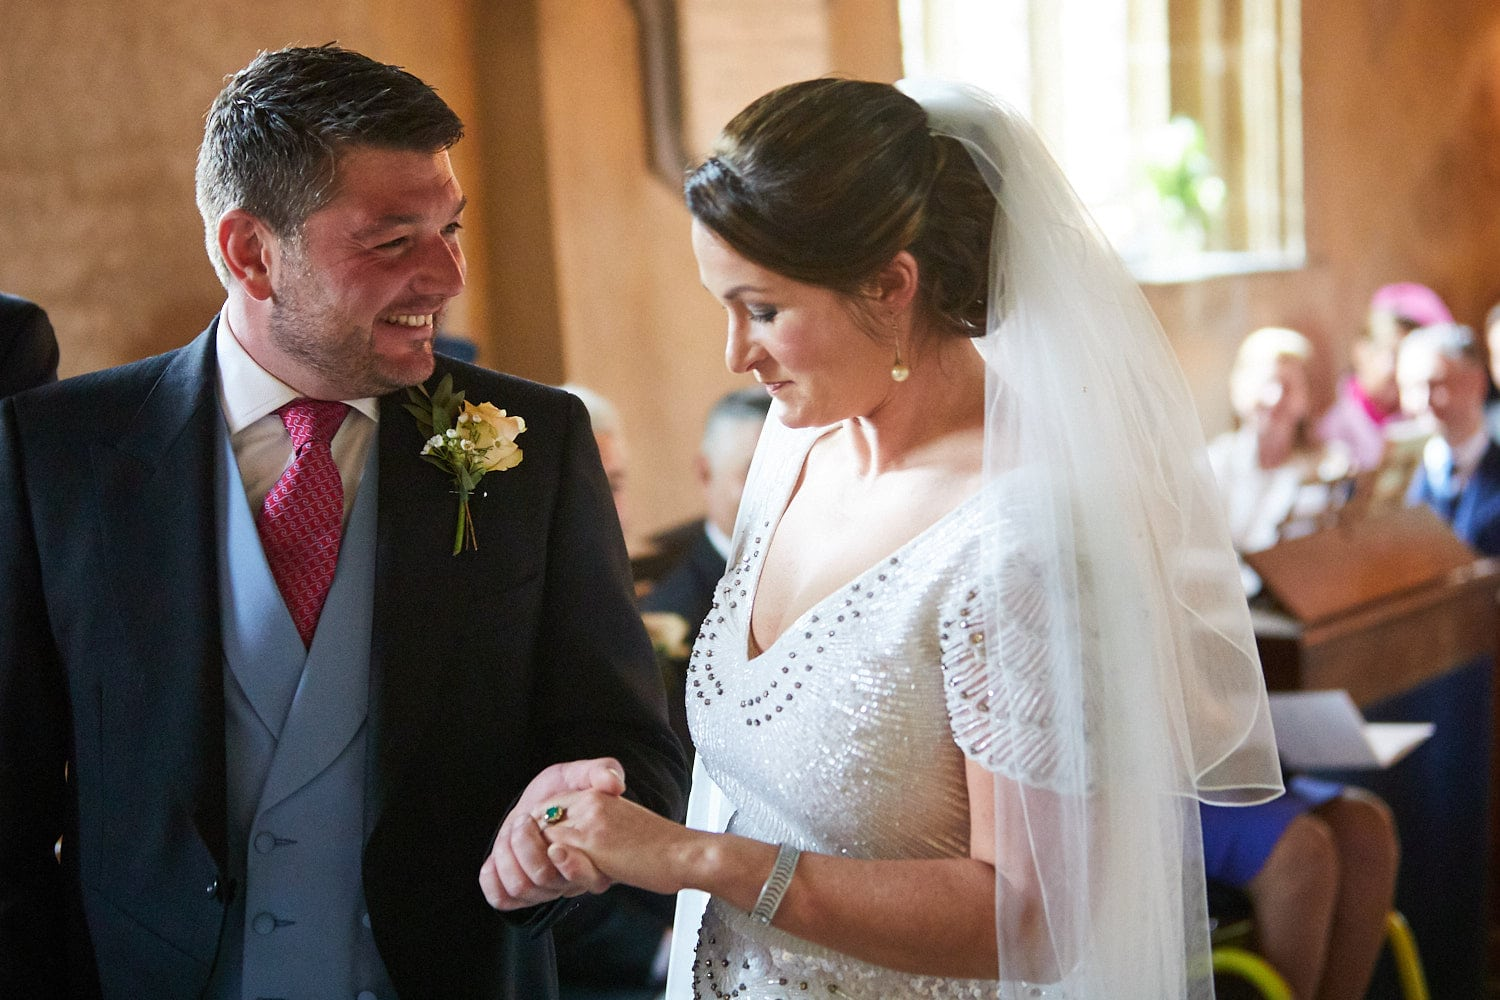 A groom smiles as he looks at his wife lovingly after they exchanged rings on their wedding day